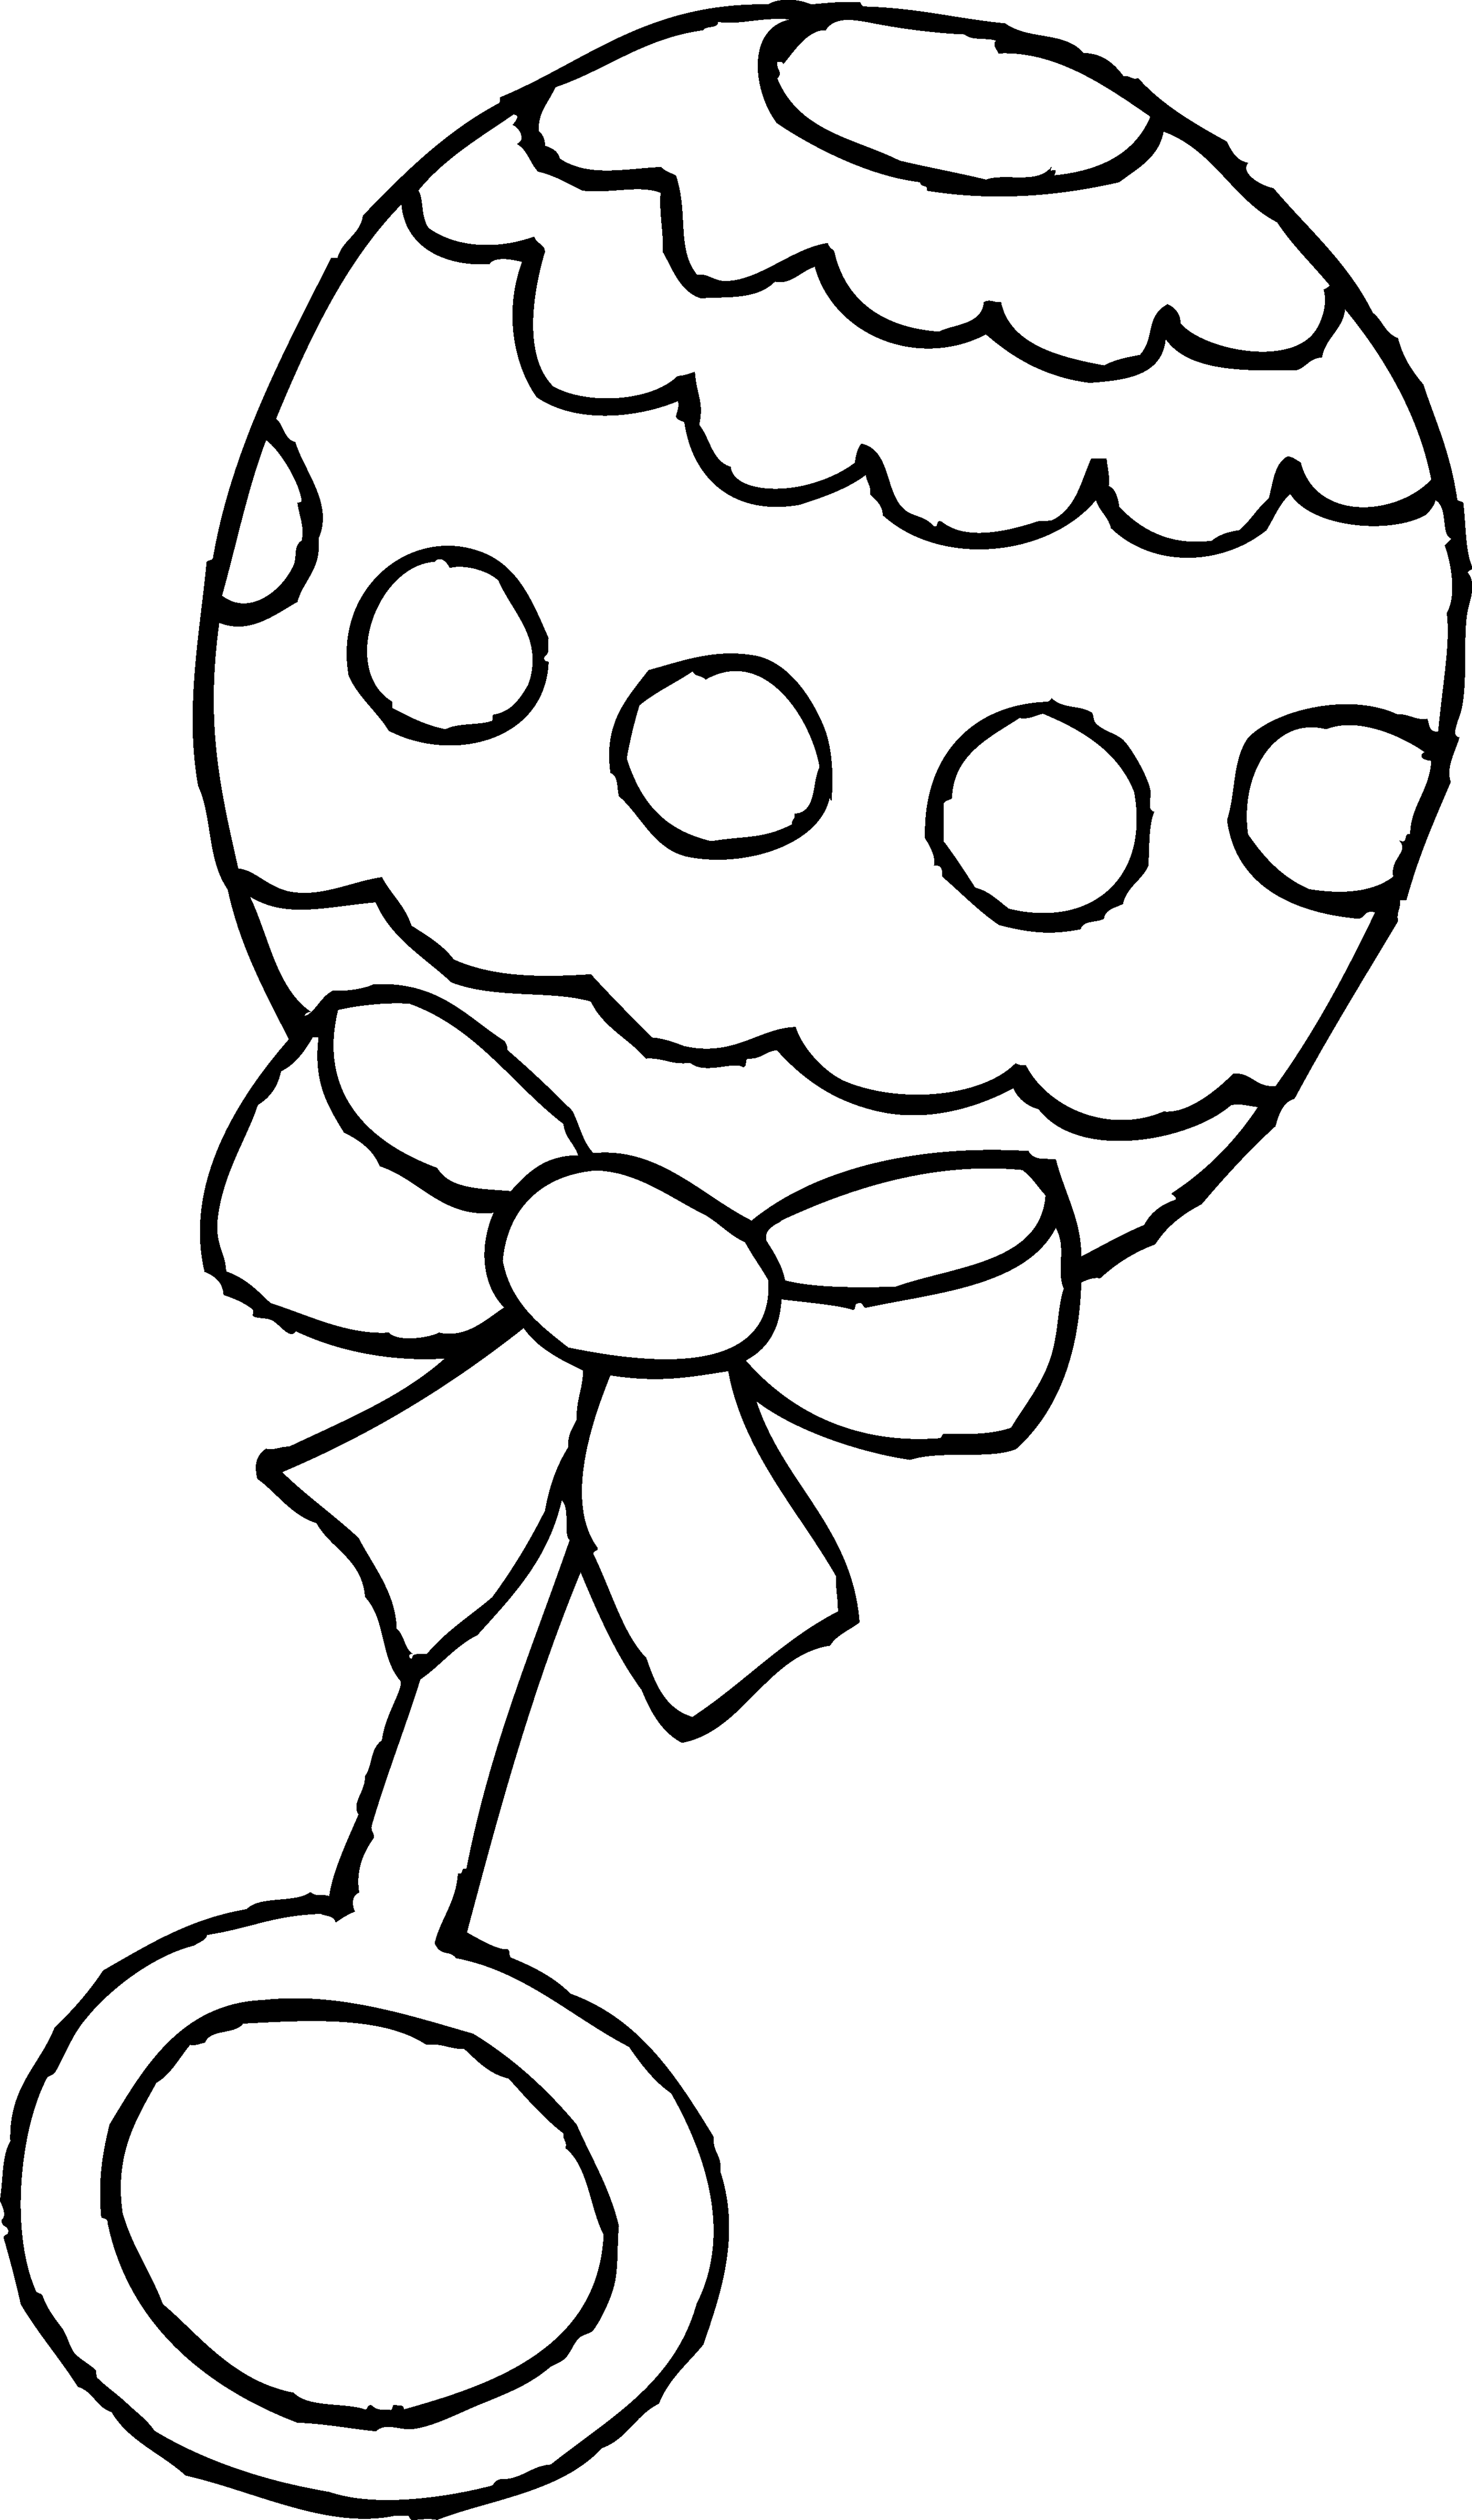 Baby rattle baby clipart black and white free to use clip.